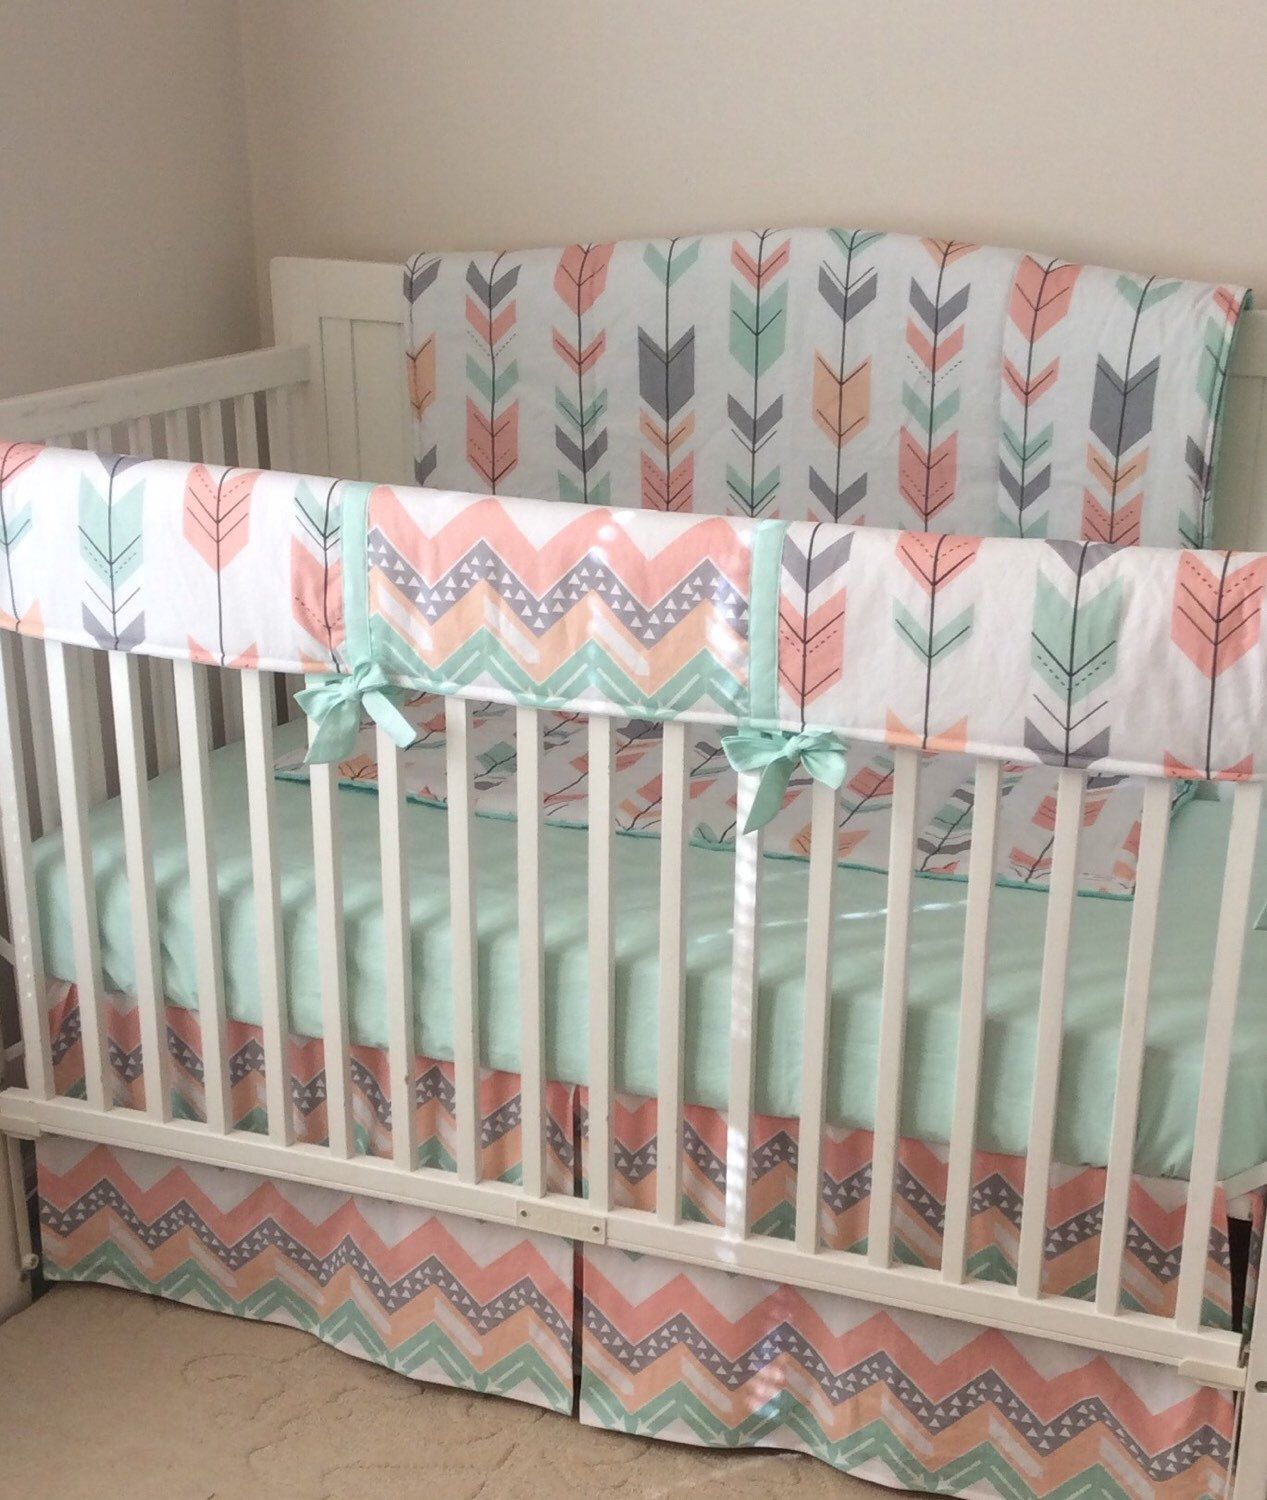 Coral Peach Pint And Gray Arrows Crib Bedding A Personal Favorite From My Etsy Shop Https Www Etsy Com Listing 265 With Images Baby Girl Room Crib Bedding Girl Baby Bed